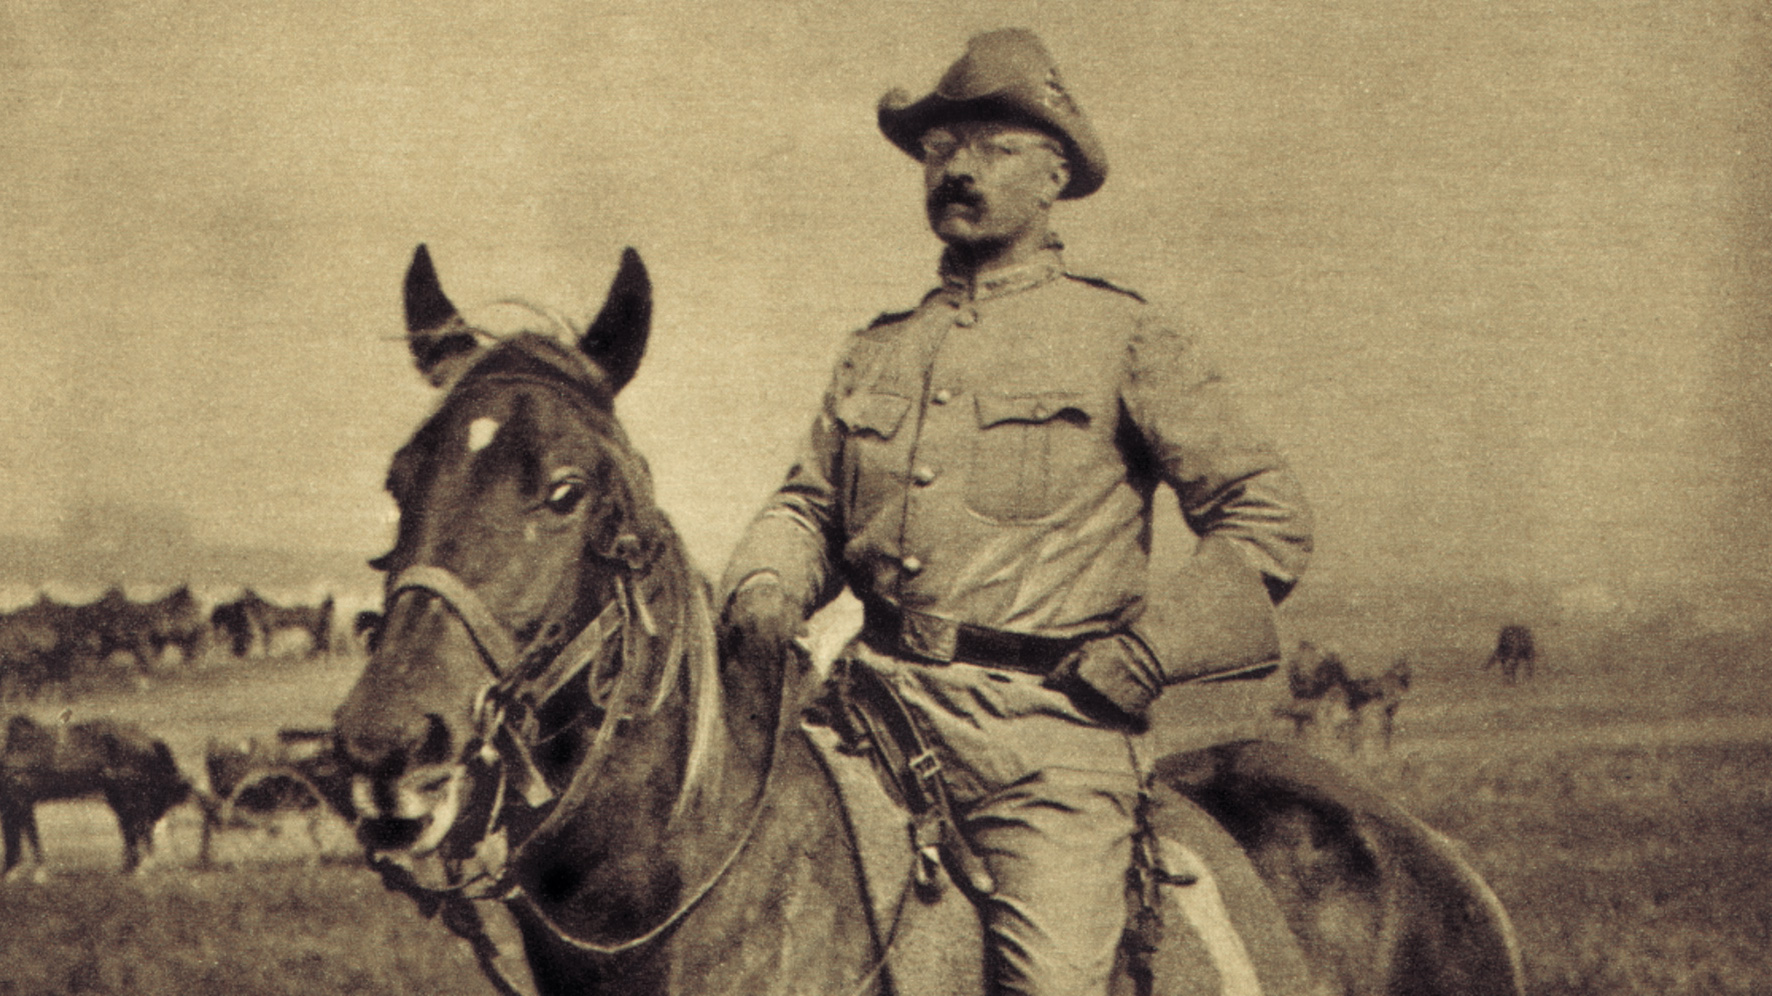 How Teddy Roosevelt Crafted an Image of American Manliness